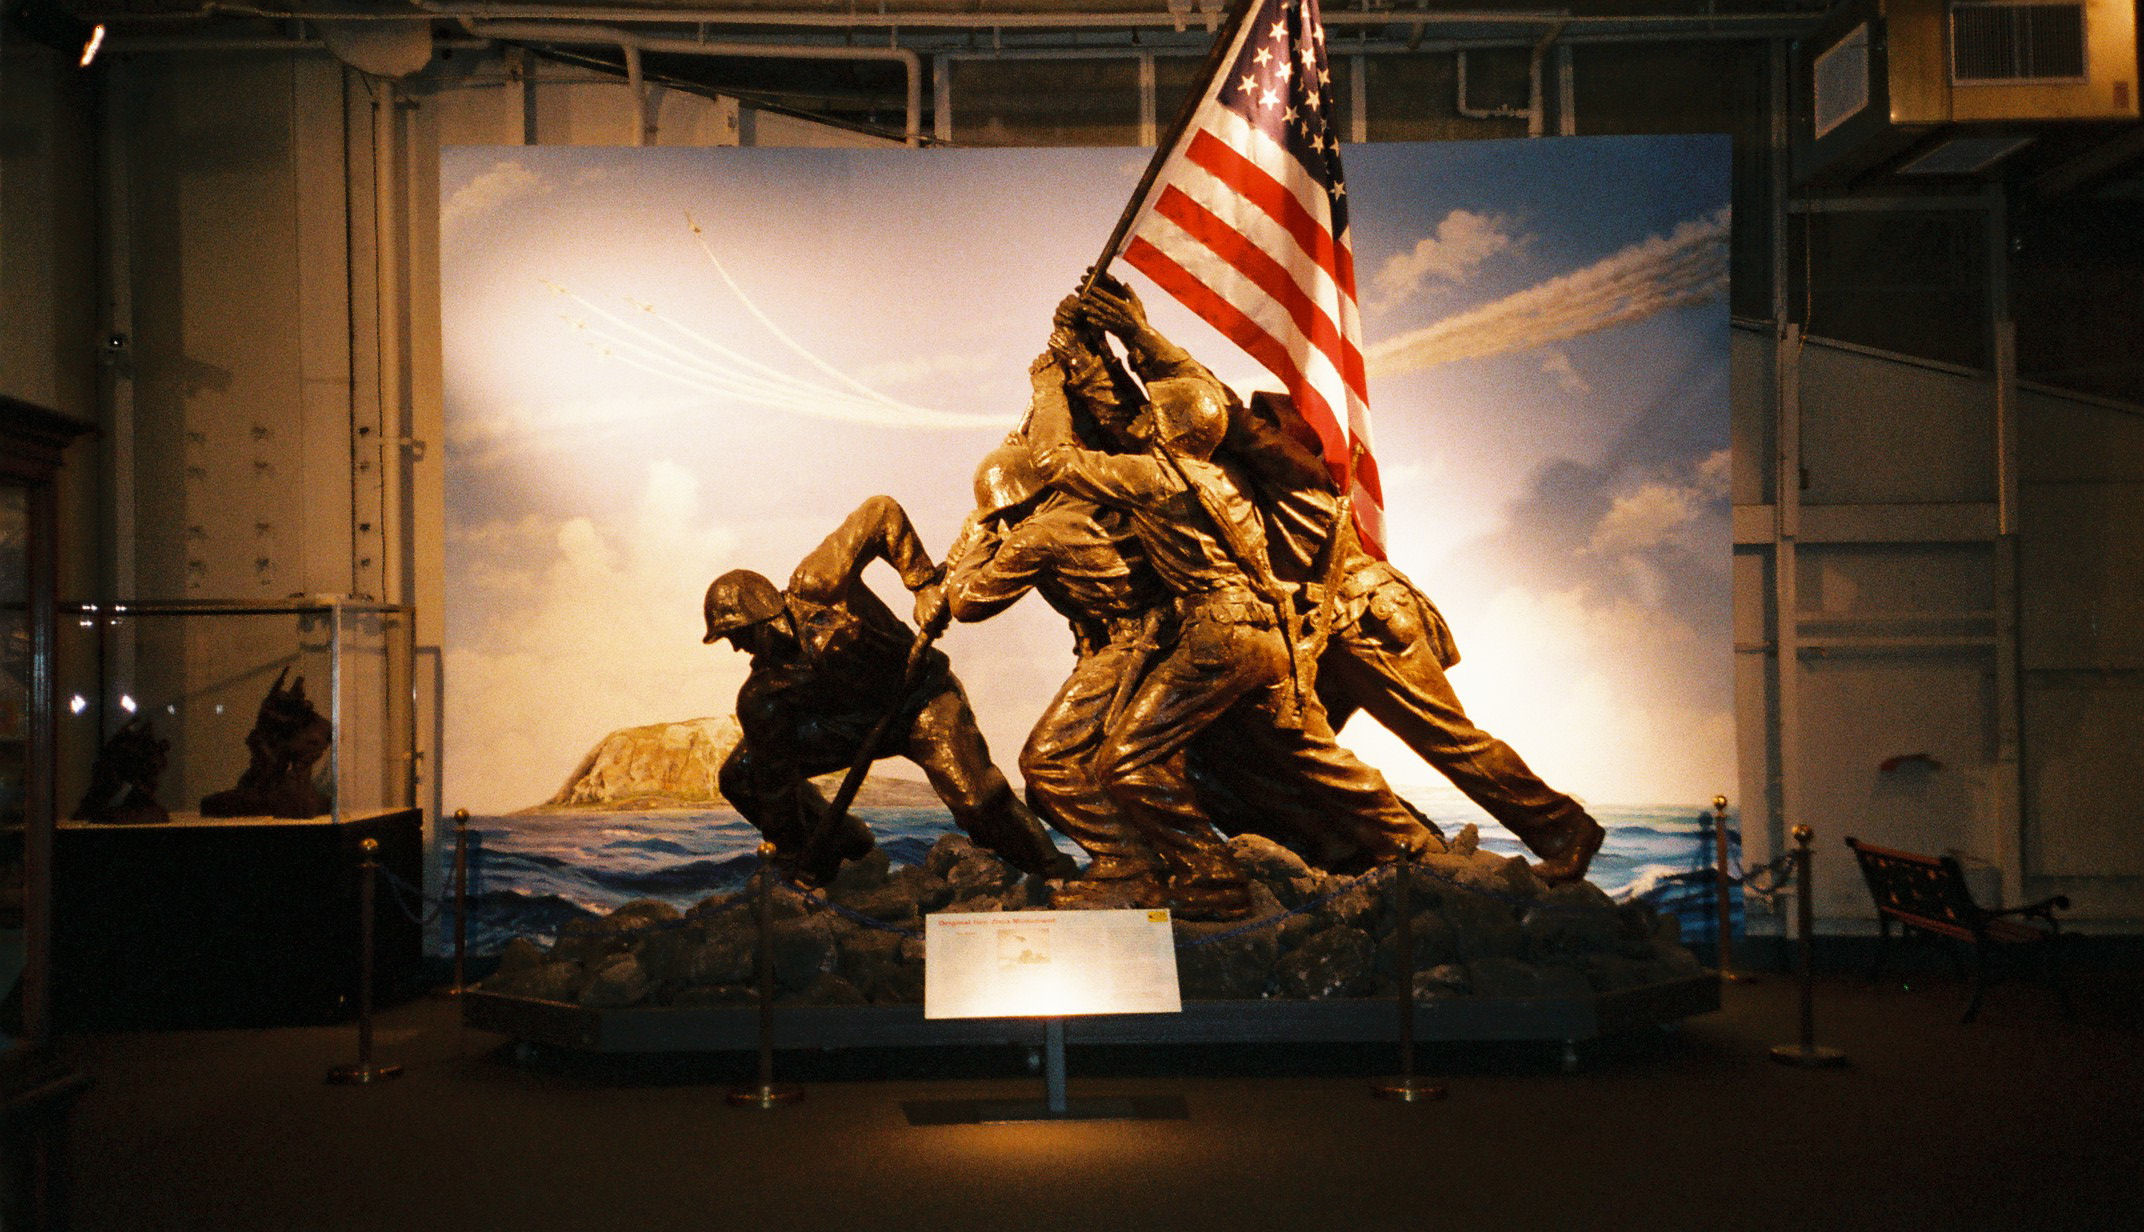 Res: 2144x1232, File:Iwo Jima Memorial Statue, USS Intrepid, New York City. (727855908